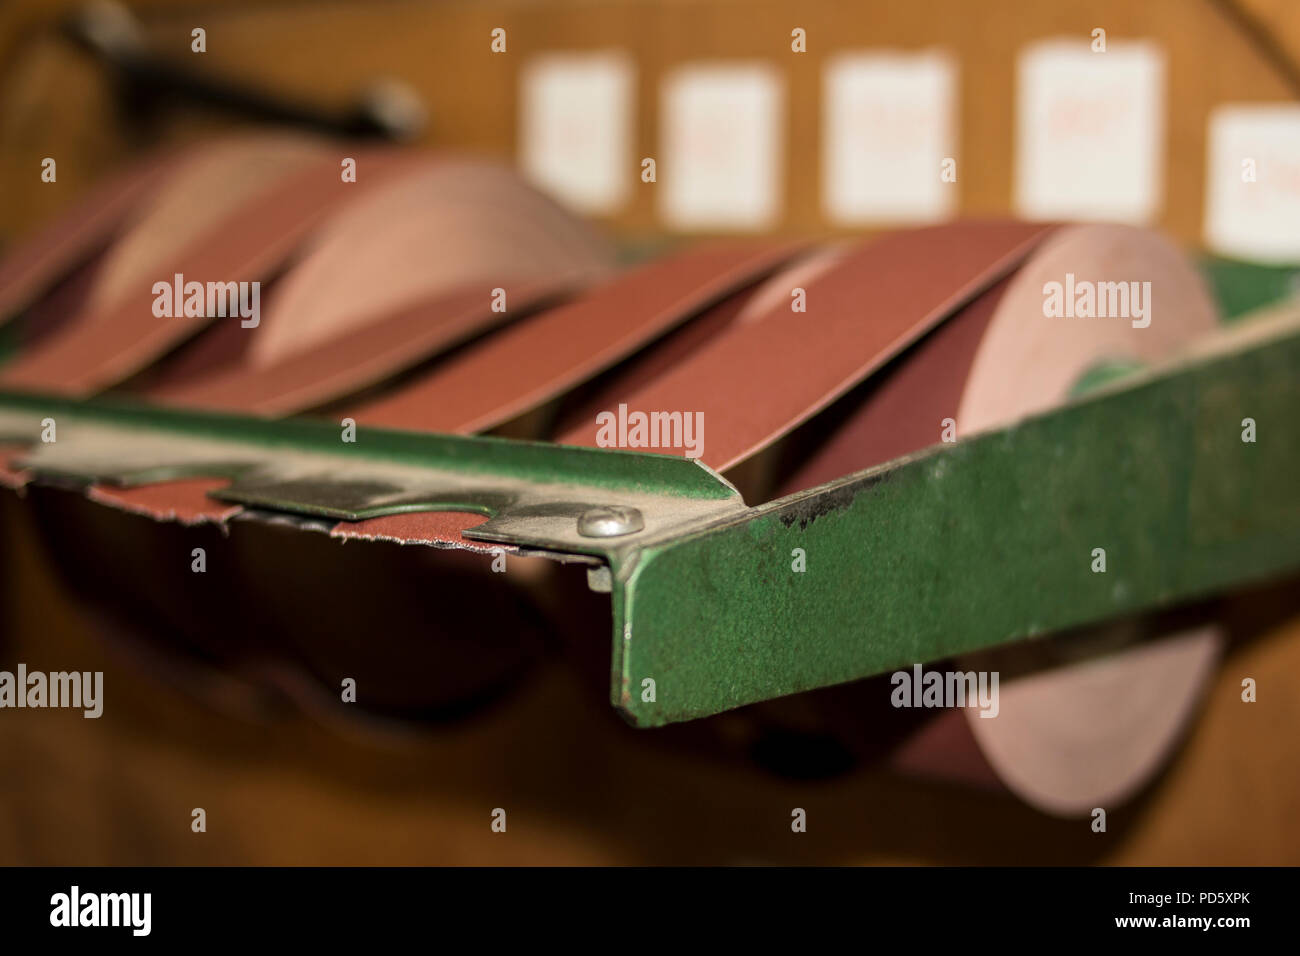 Sandpaper on rolls industrial work shop tools for fine smooth sanding of metal and wood - Stock Image